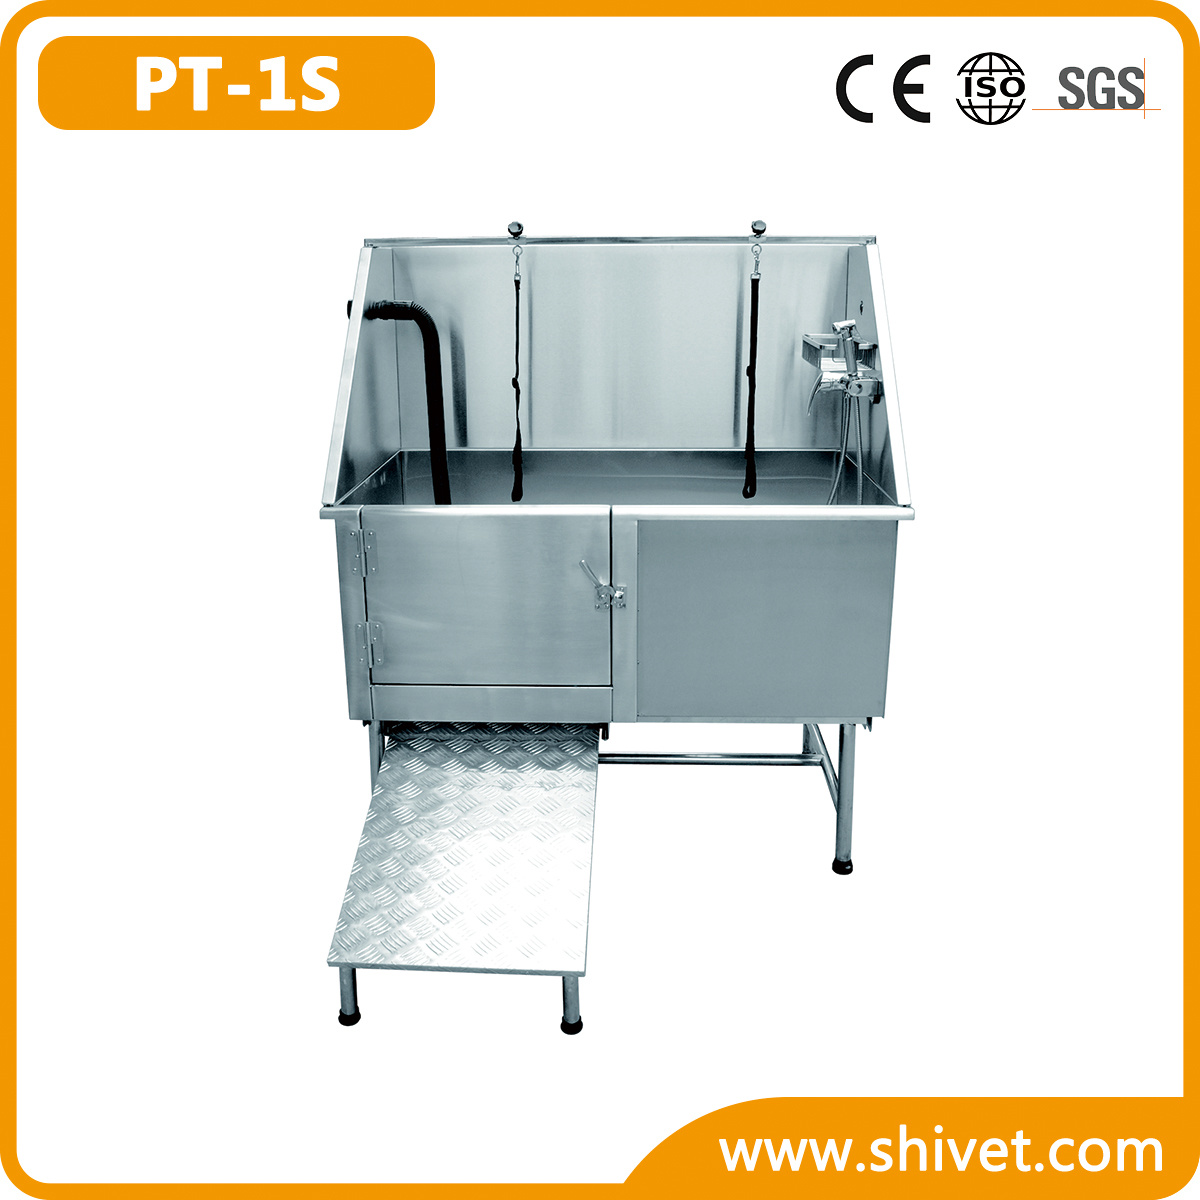 Stainless Steel Grooming Tub (PT-1S)